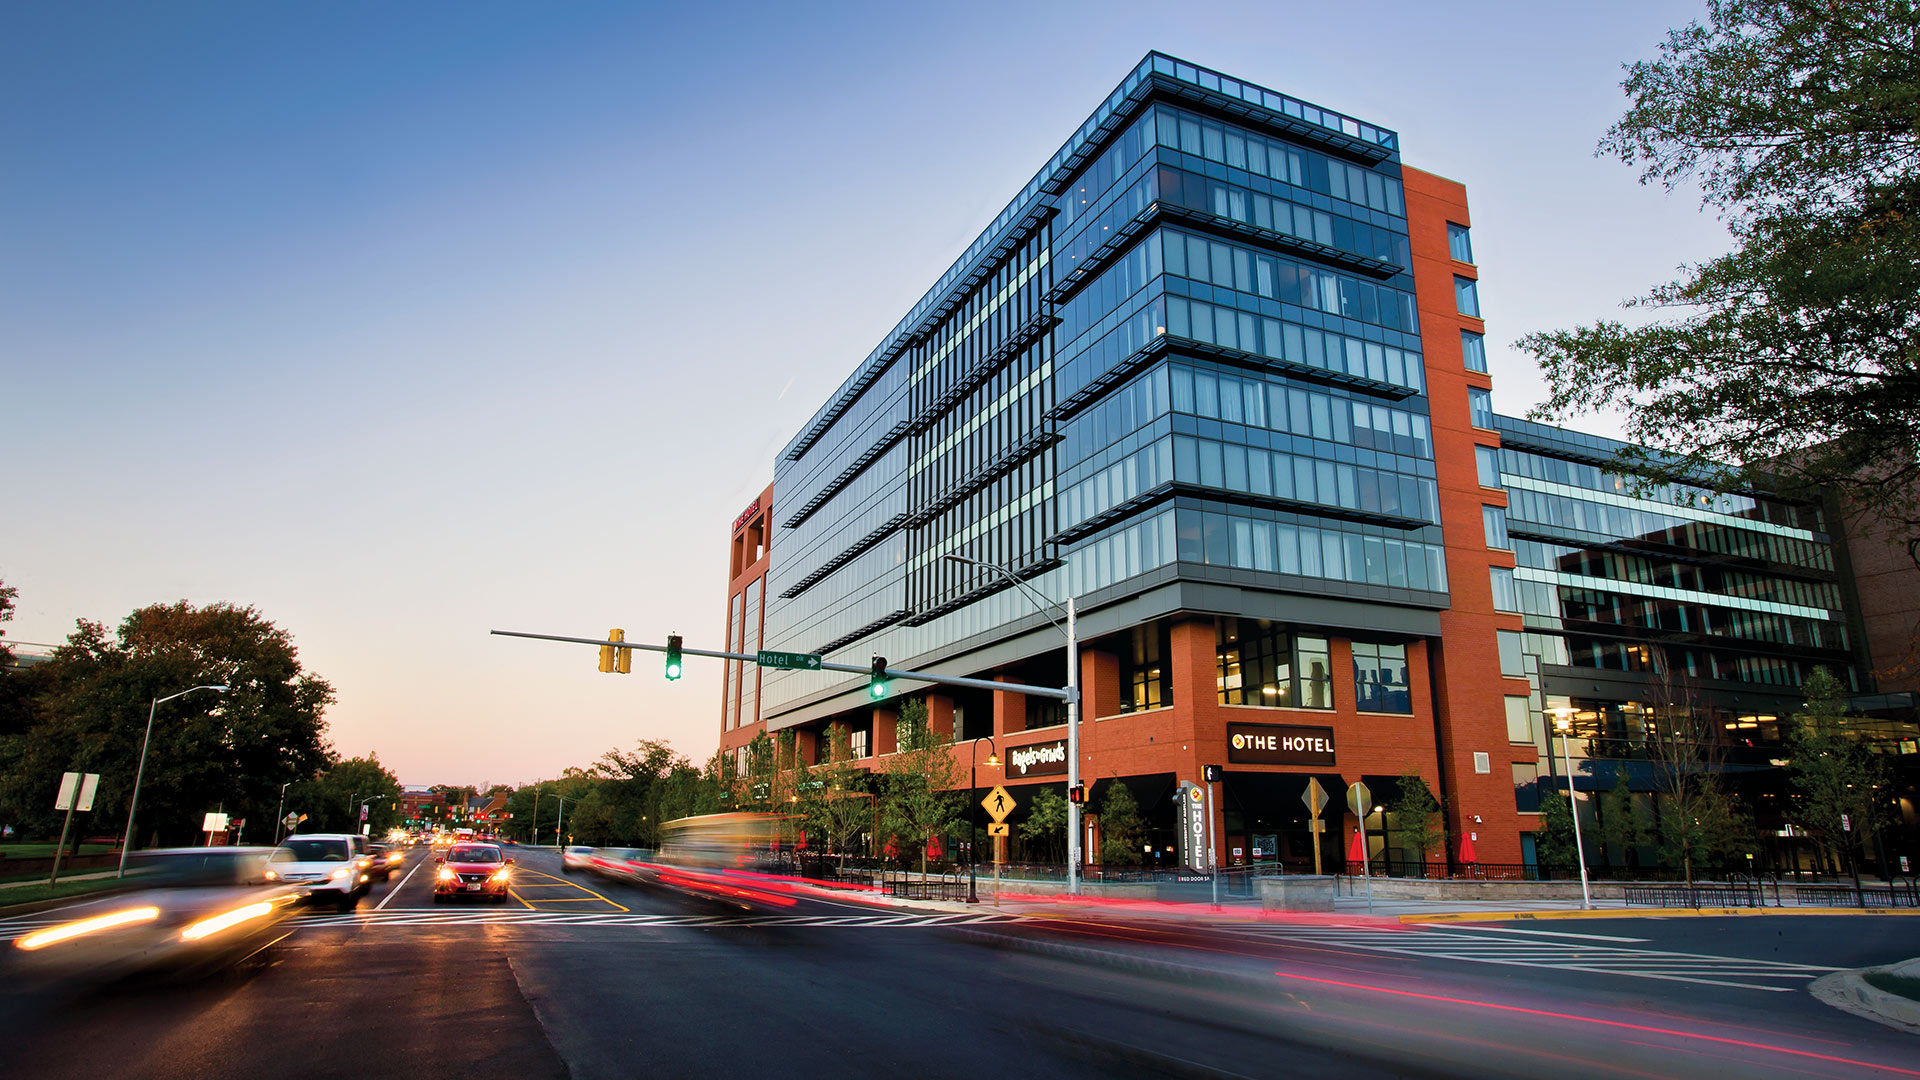 UMD Partners on Corridor Revitalization with New Hotel and Restaurants